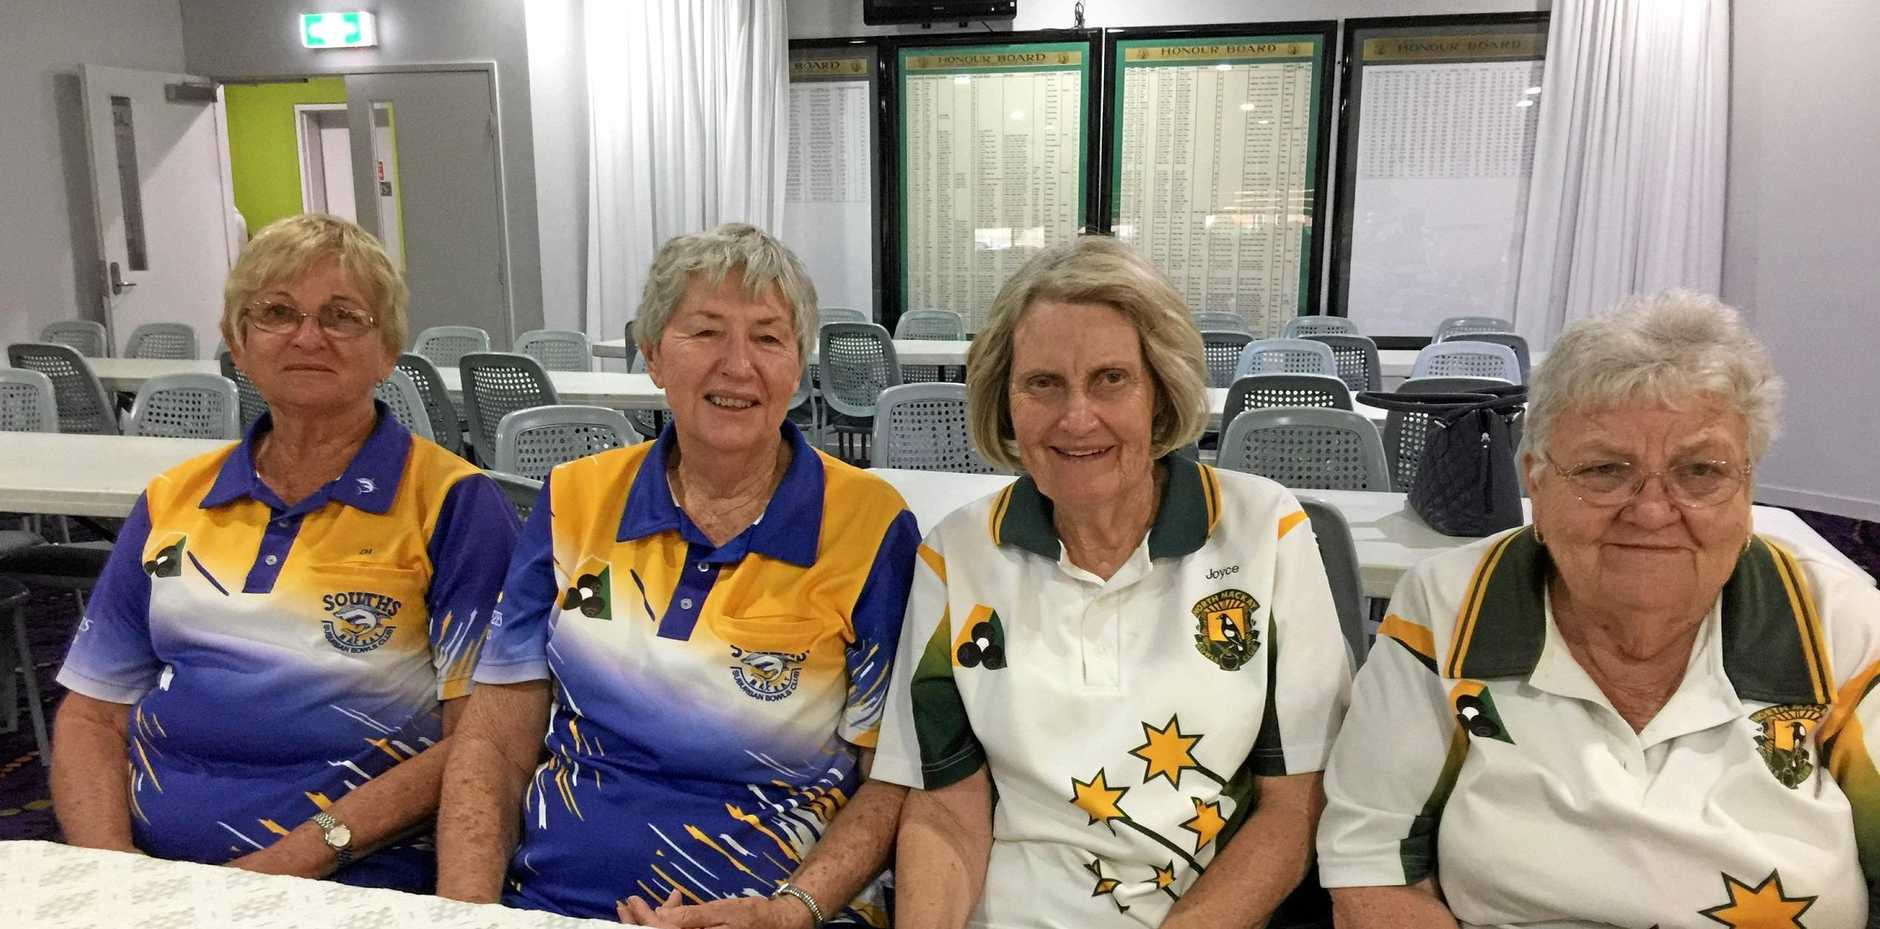 TOP MATCH: 2018 Master Pairs finalists Di Faulkner, Dal MacKelvie, Joyce Camilleri and Thelma Searle. After a marathon four and a half hours, MacKelvie and Faulkner outlasted Camilleri and Searle 19-14.